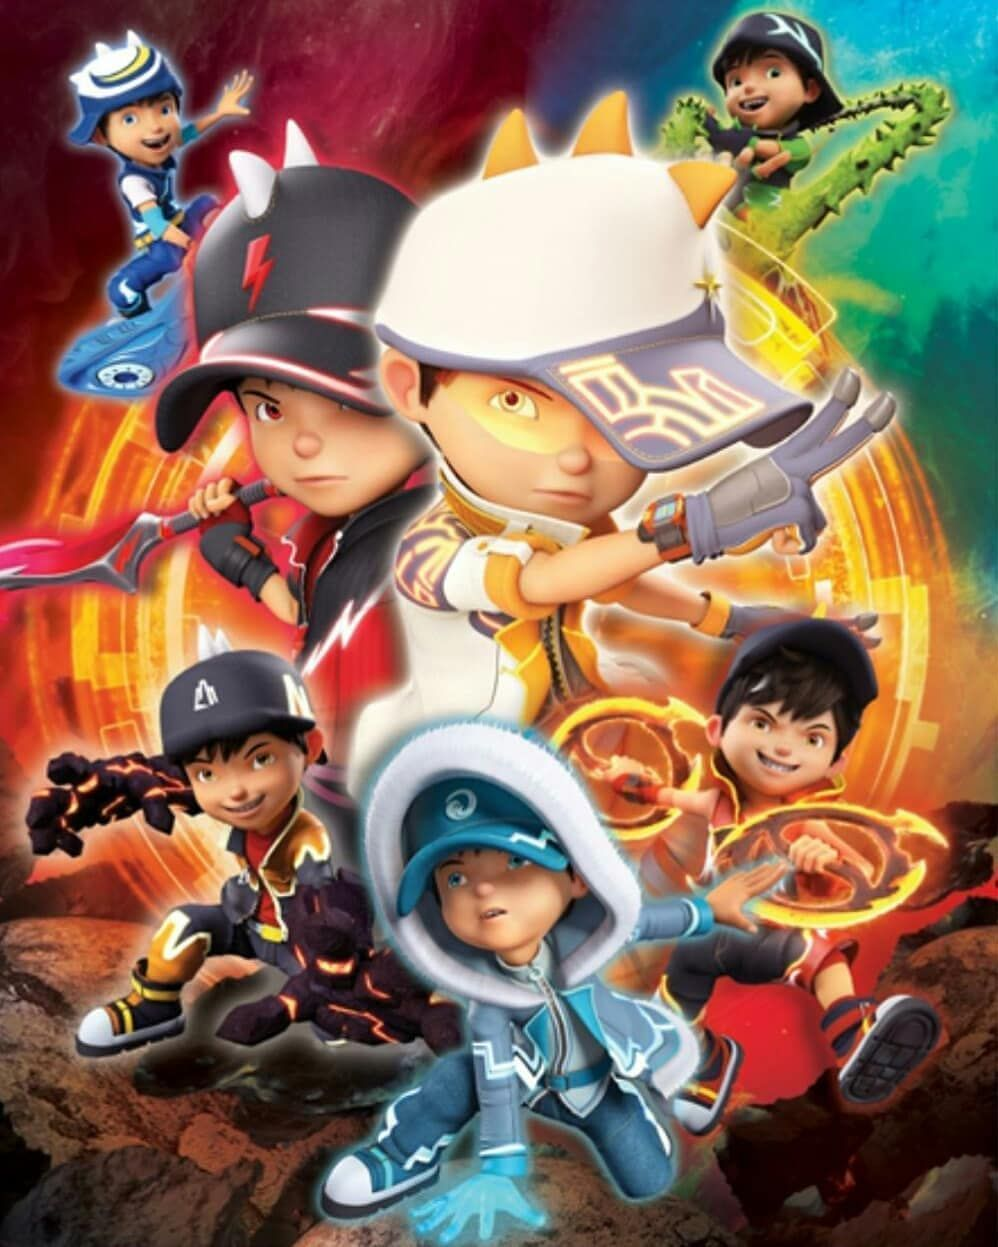 Boboiboy The Movie 2 Poster Sudah Tayang Di Bioskop